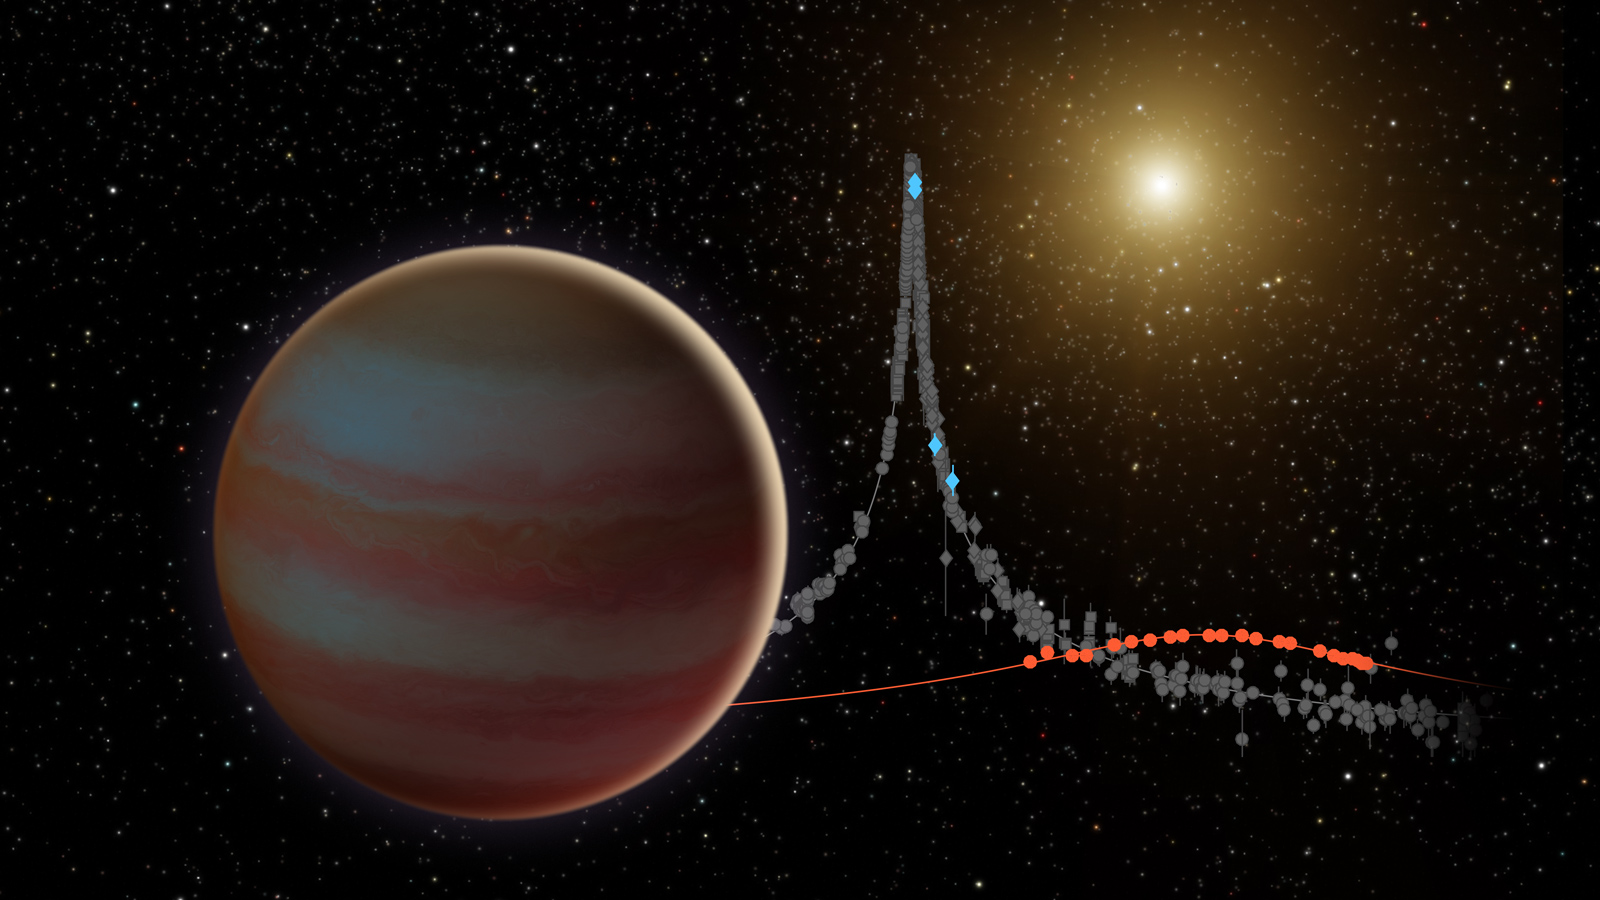 Astronomers Have Decoded a Weird Signal Coming from a Strange, 3-Body Star System